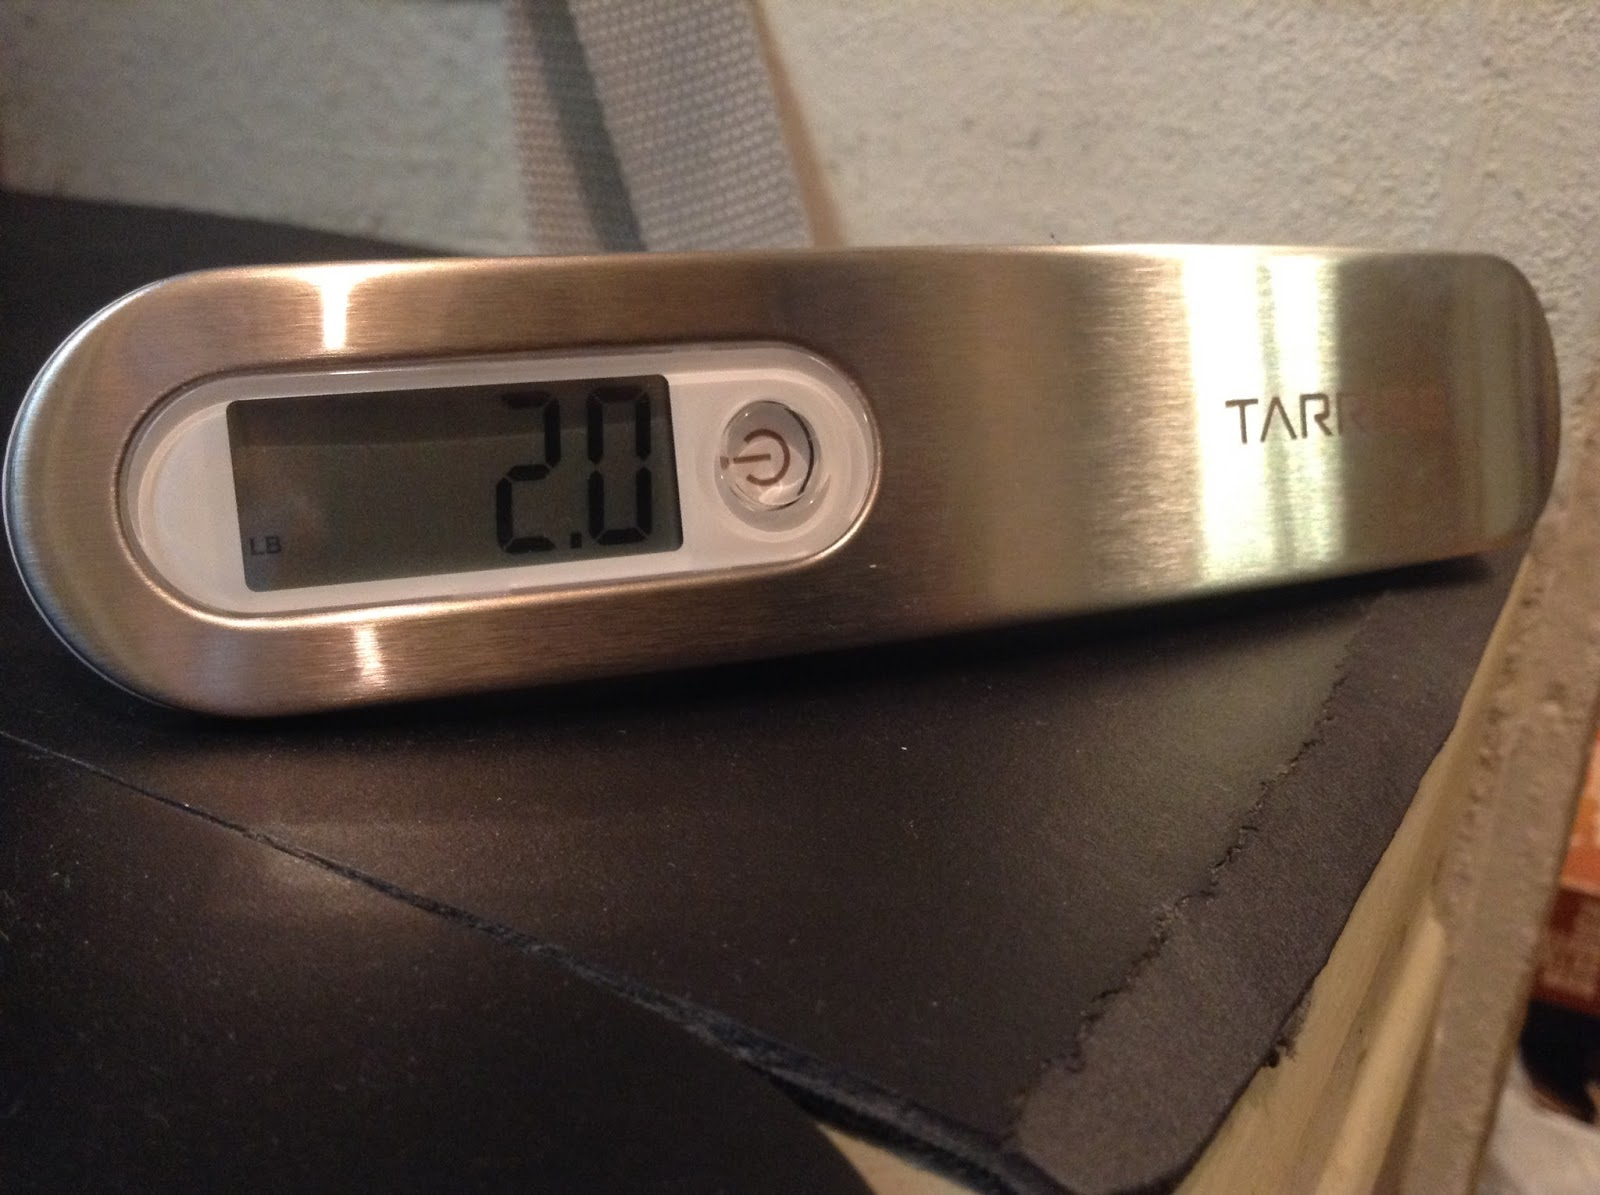 Tarriss Jetsetter Digital Luggage Scale – gift for traveler